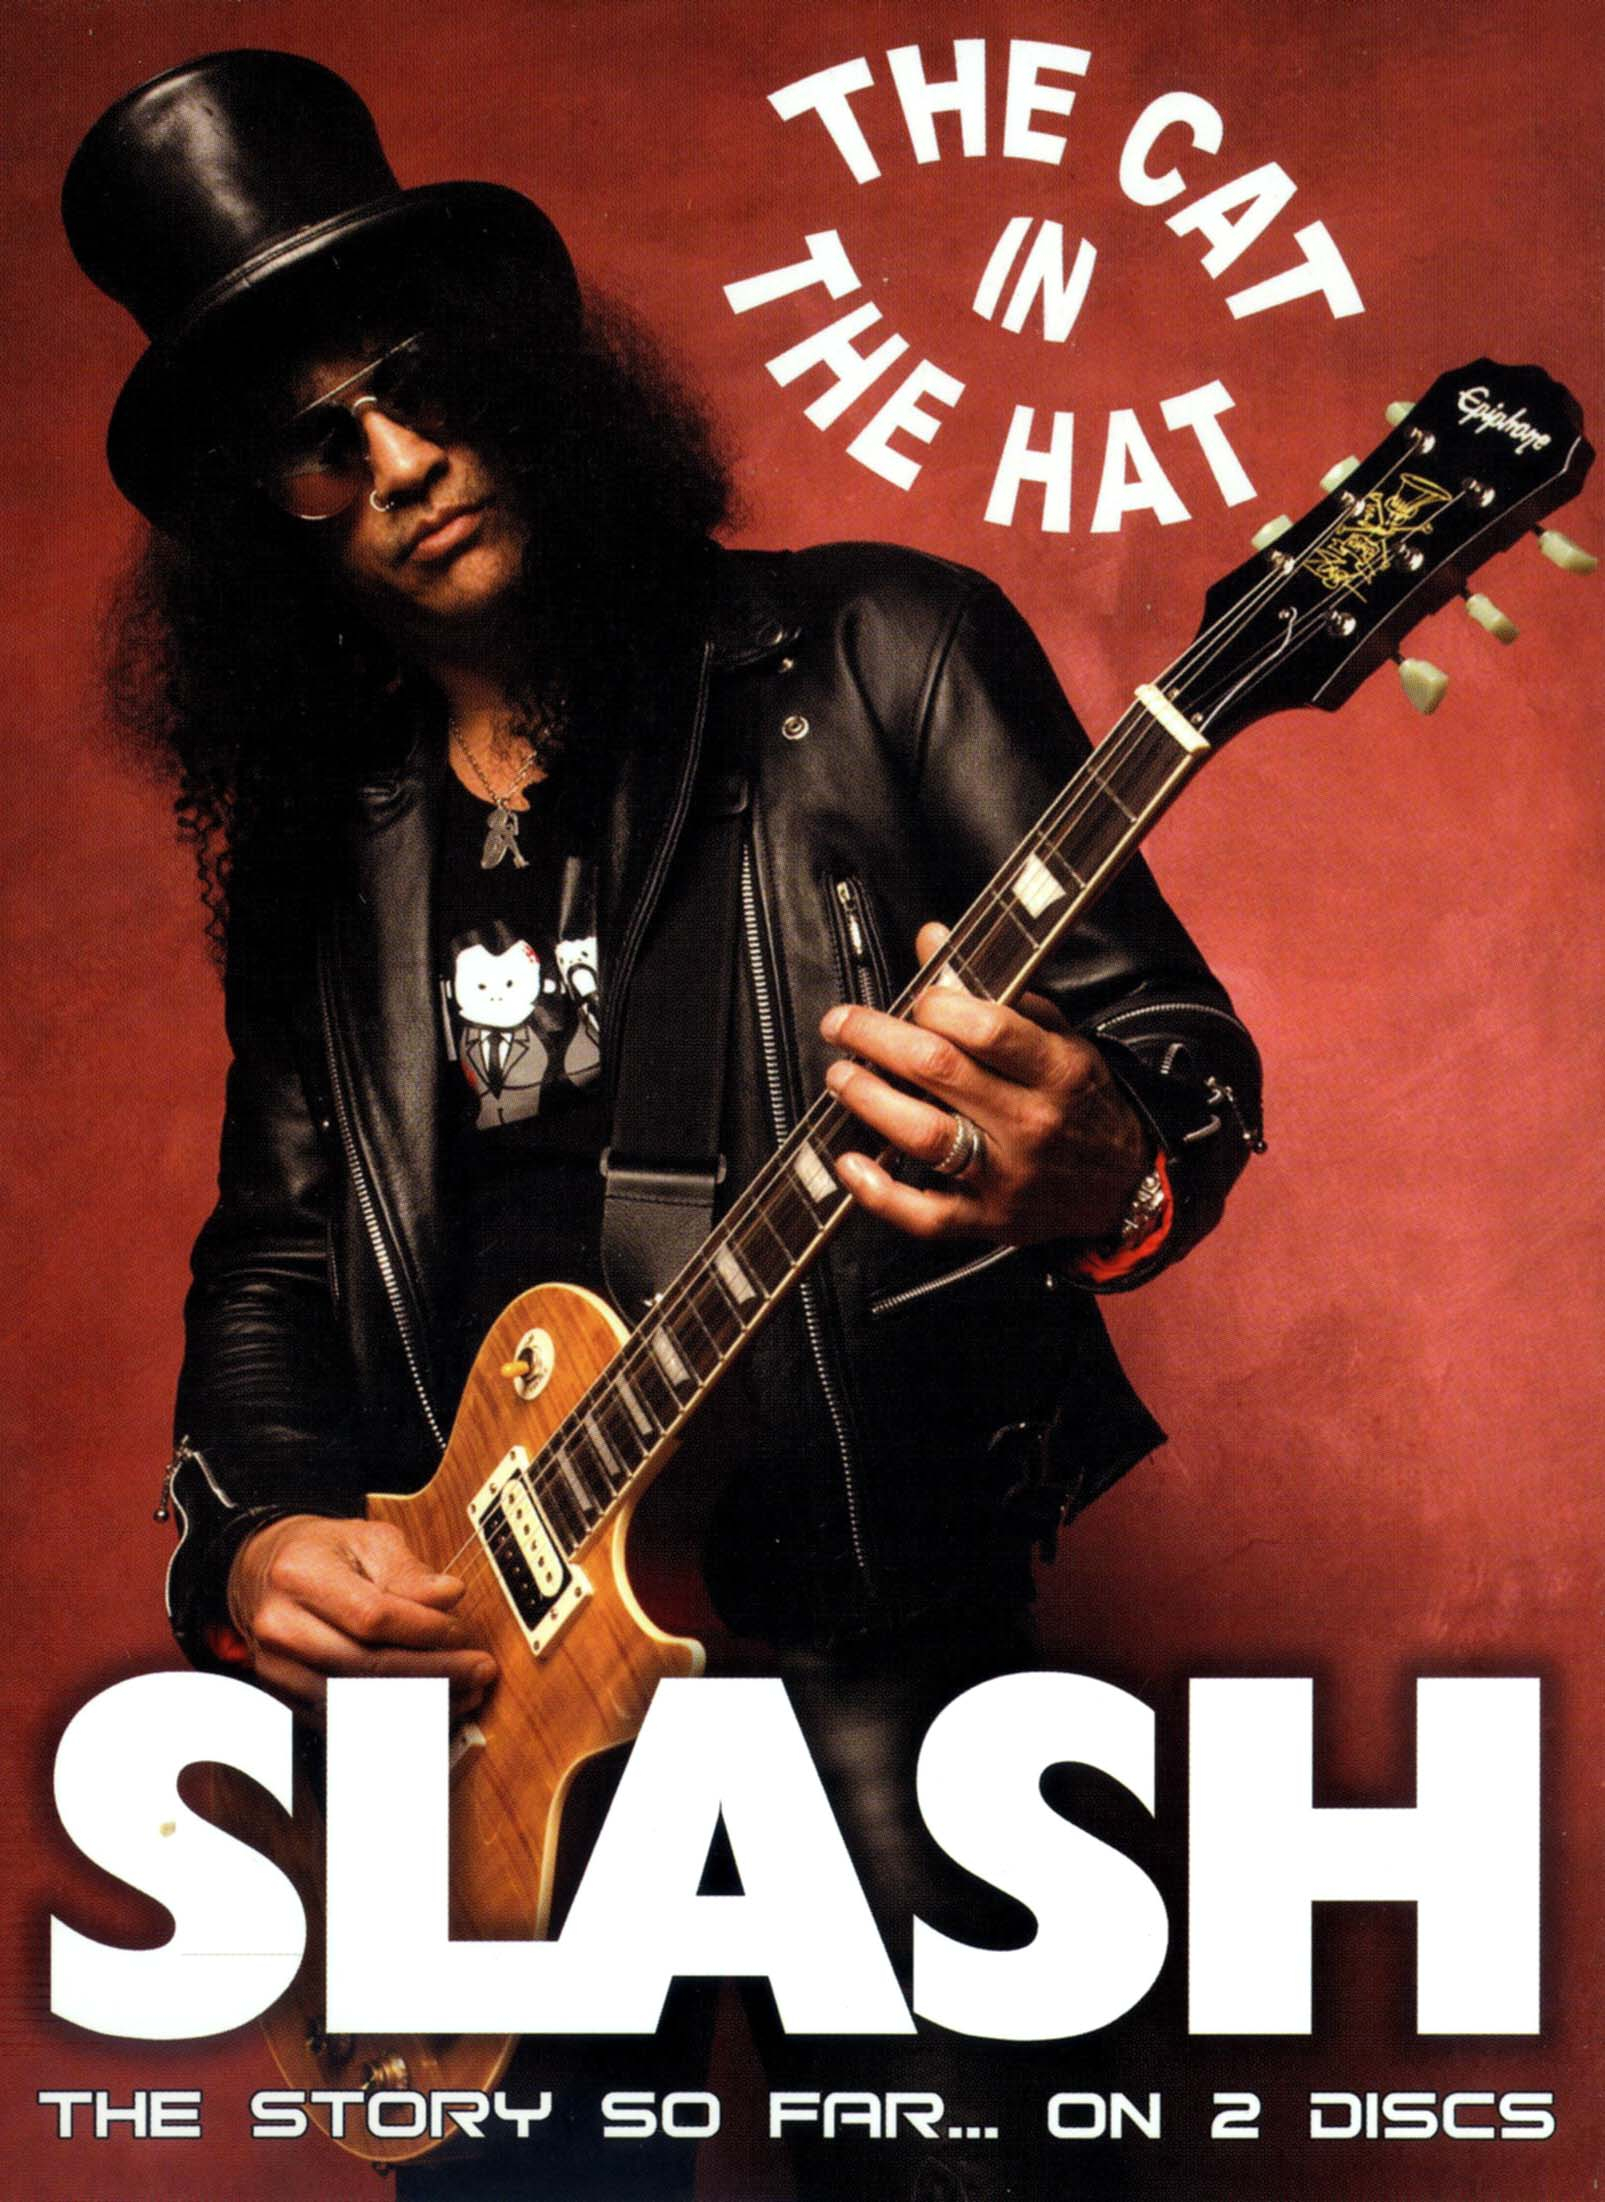 Slash: The Cat in the Hat - The Story So Far